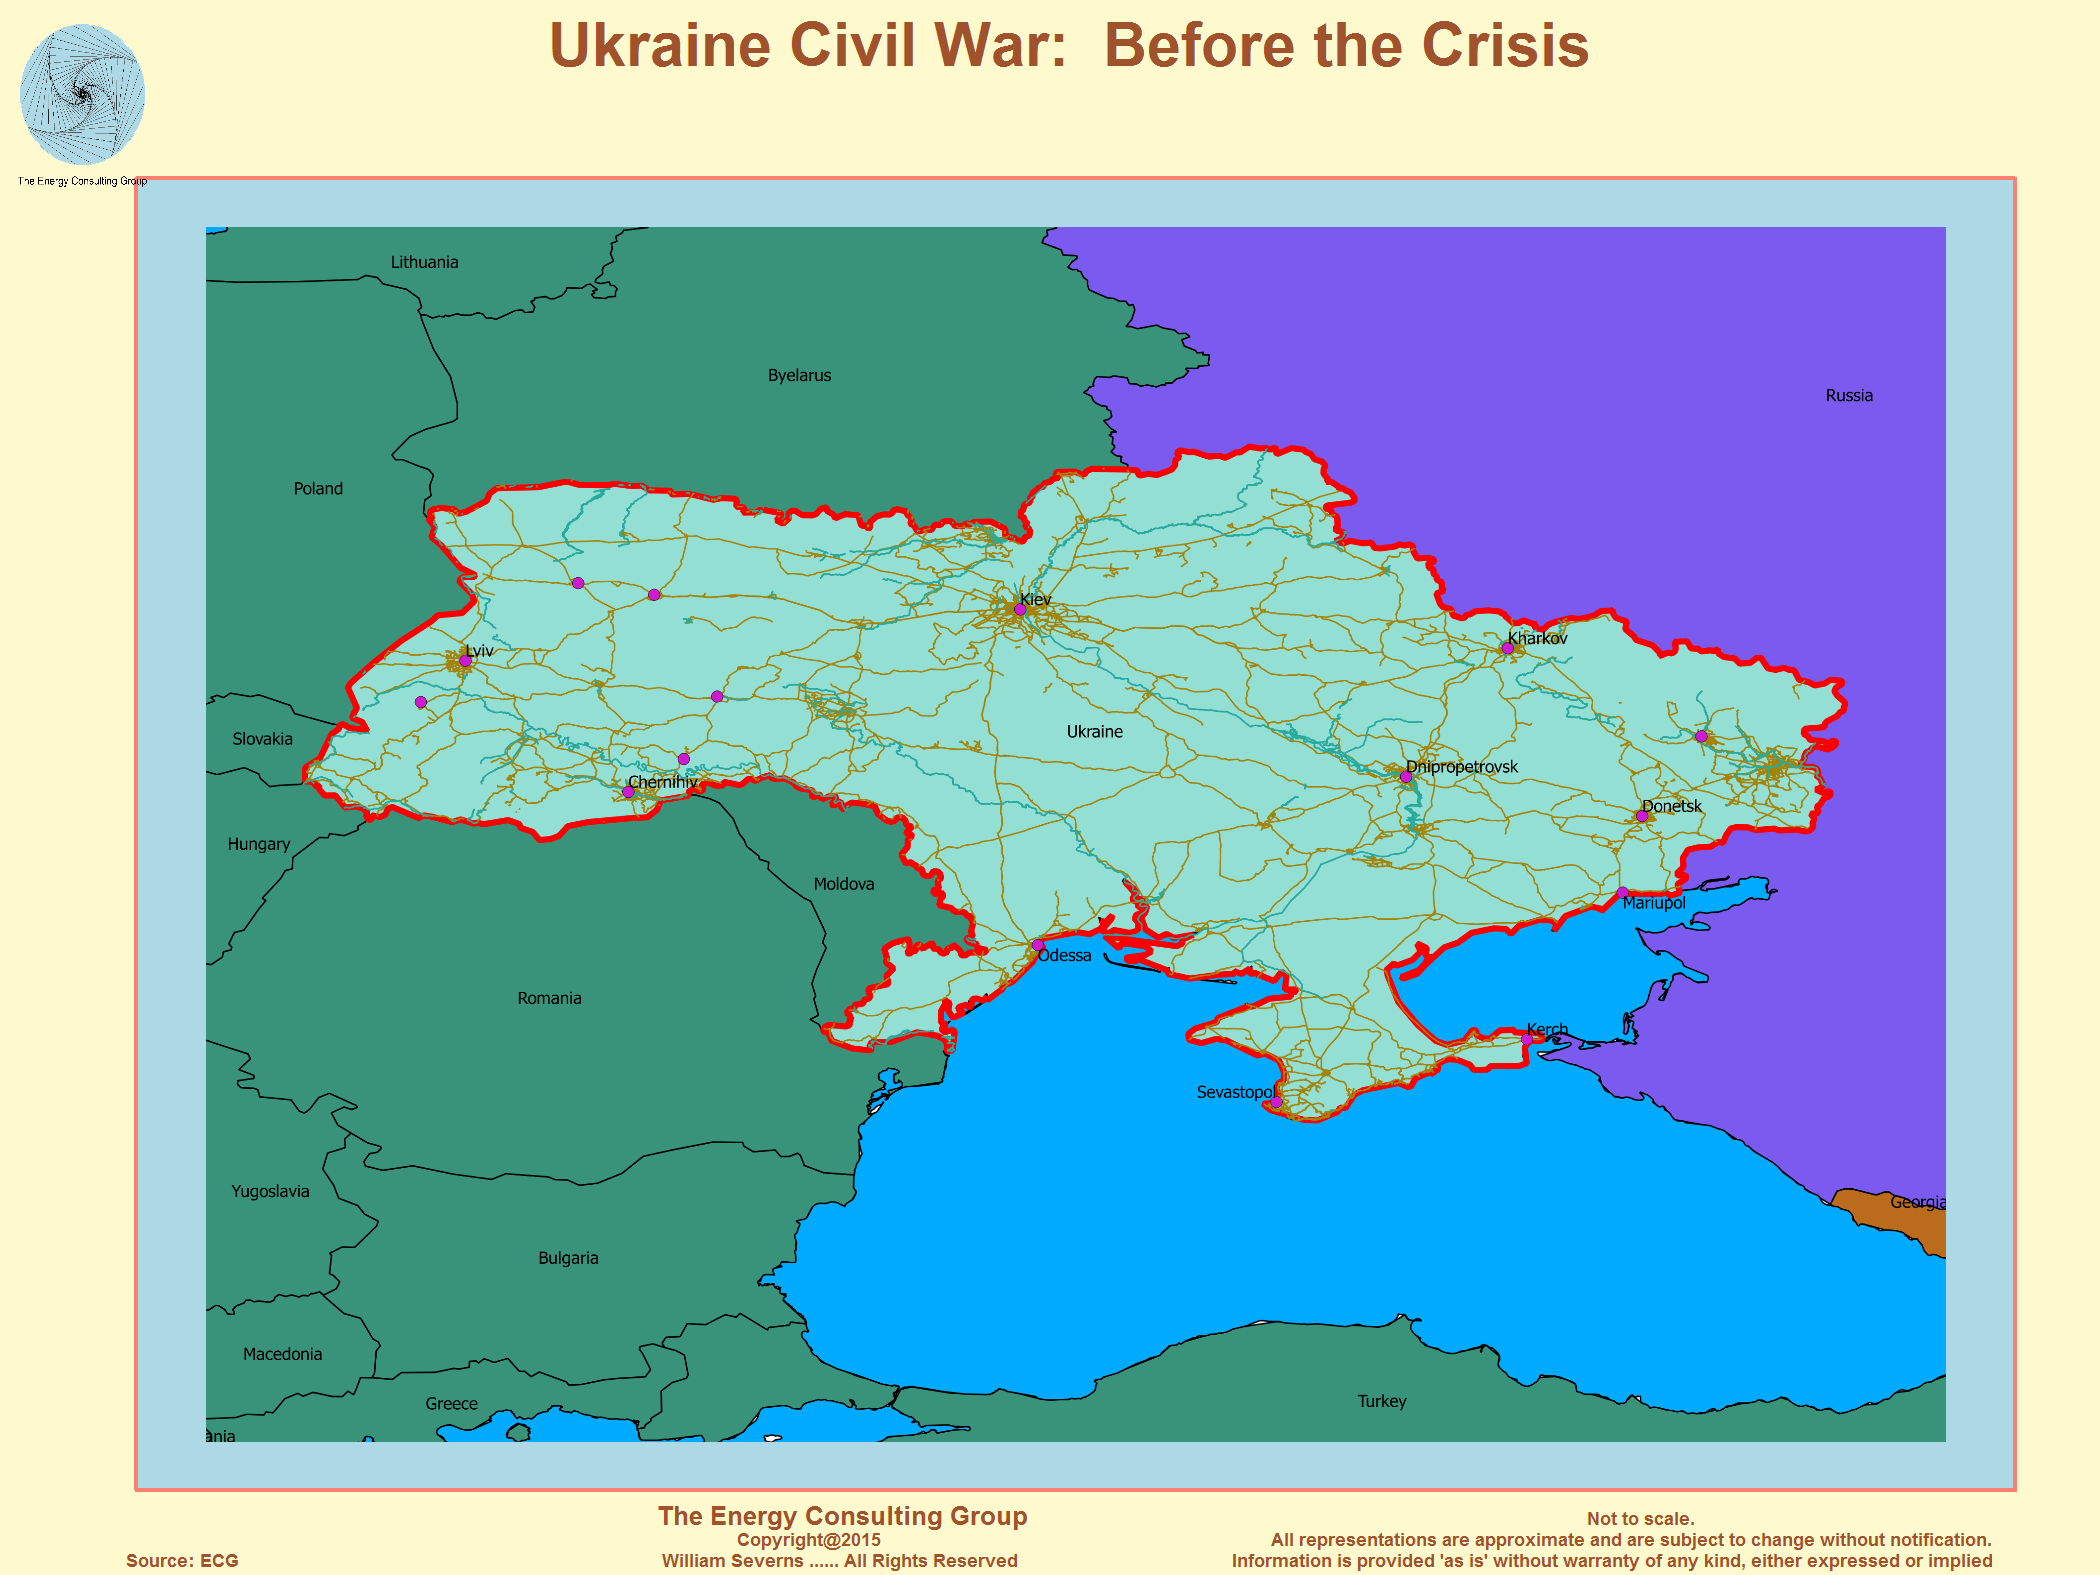 The Crisis in The Ukraine